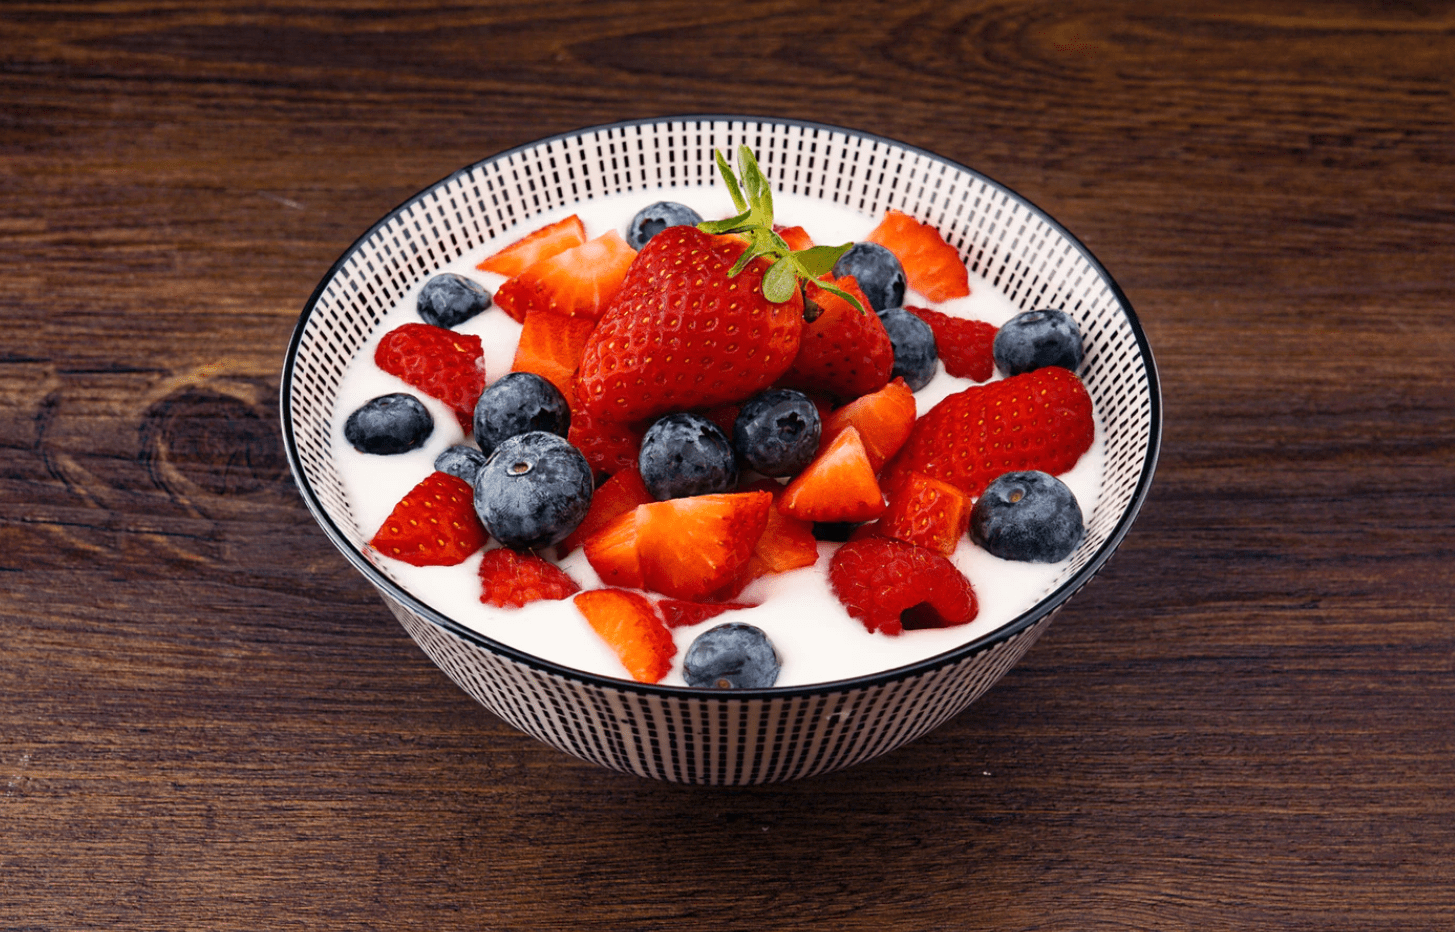 Yoghurt is delicious and can help to boost your health.